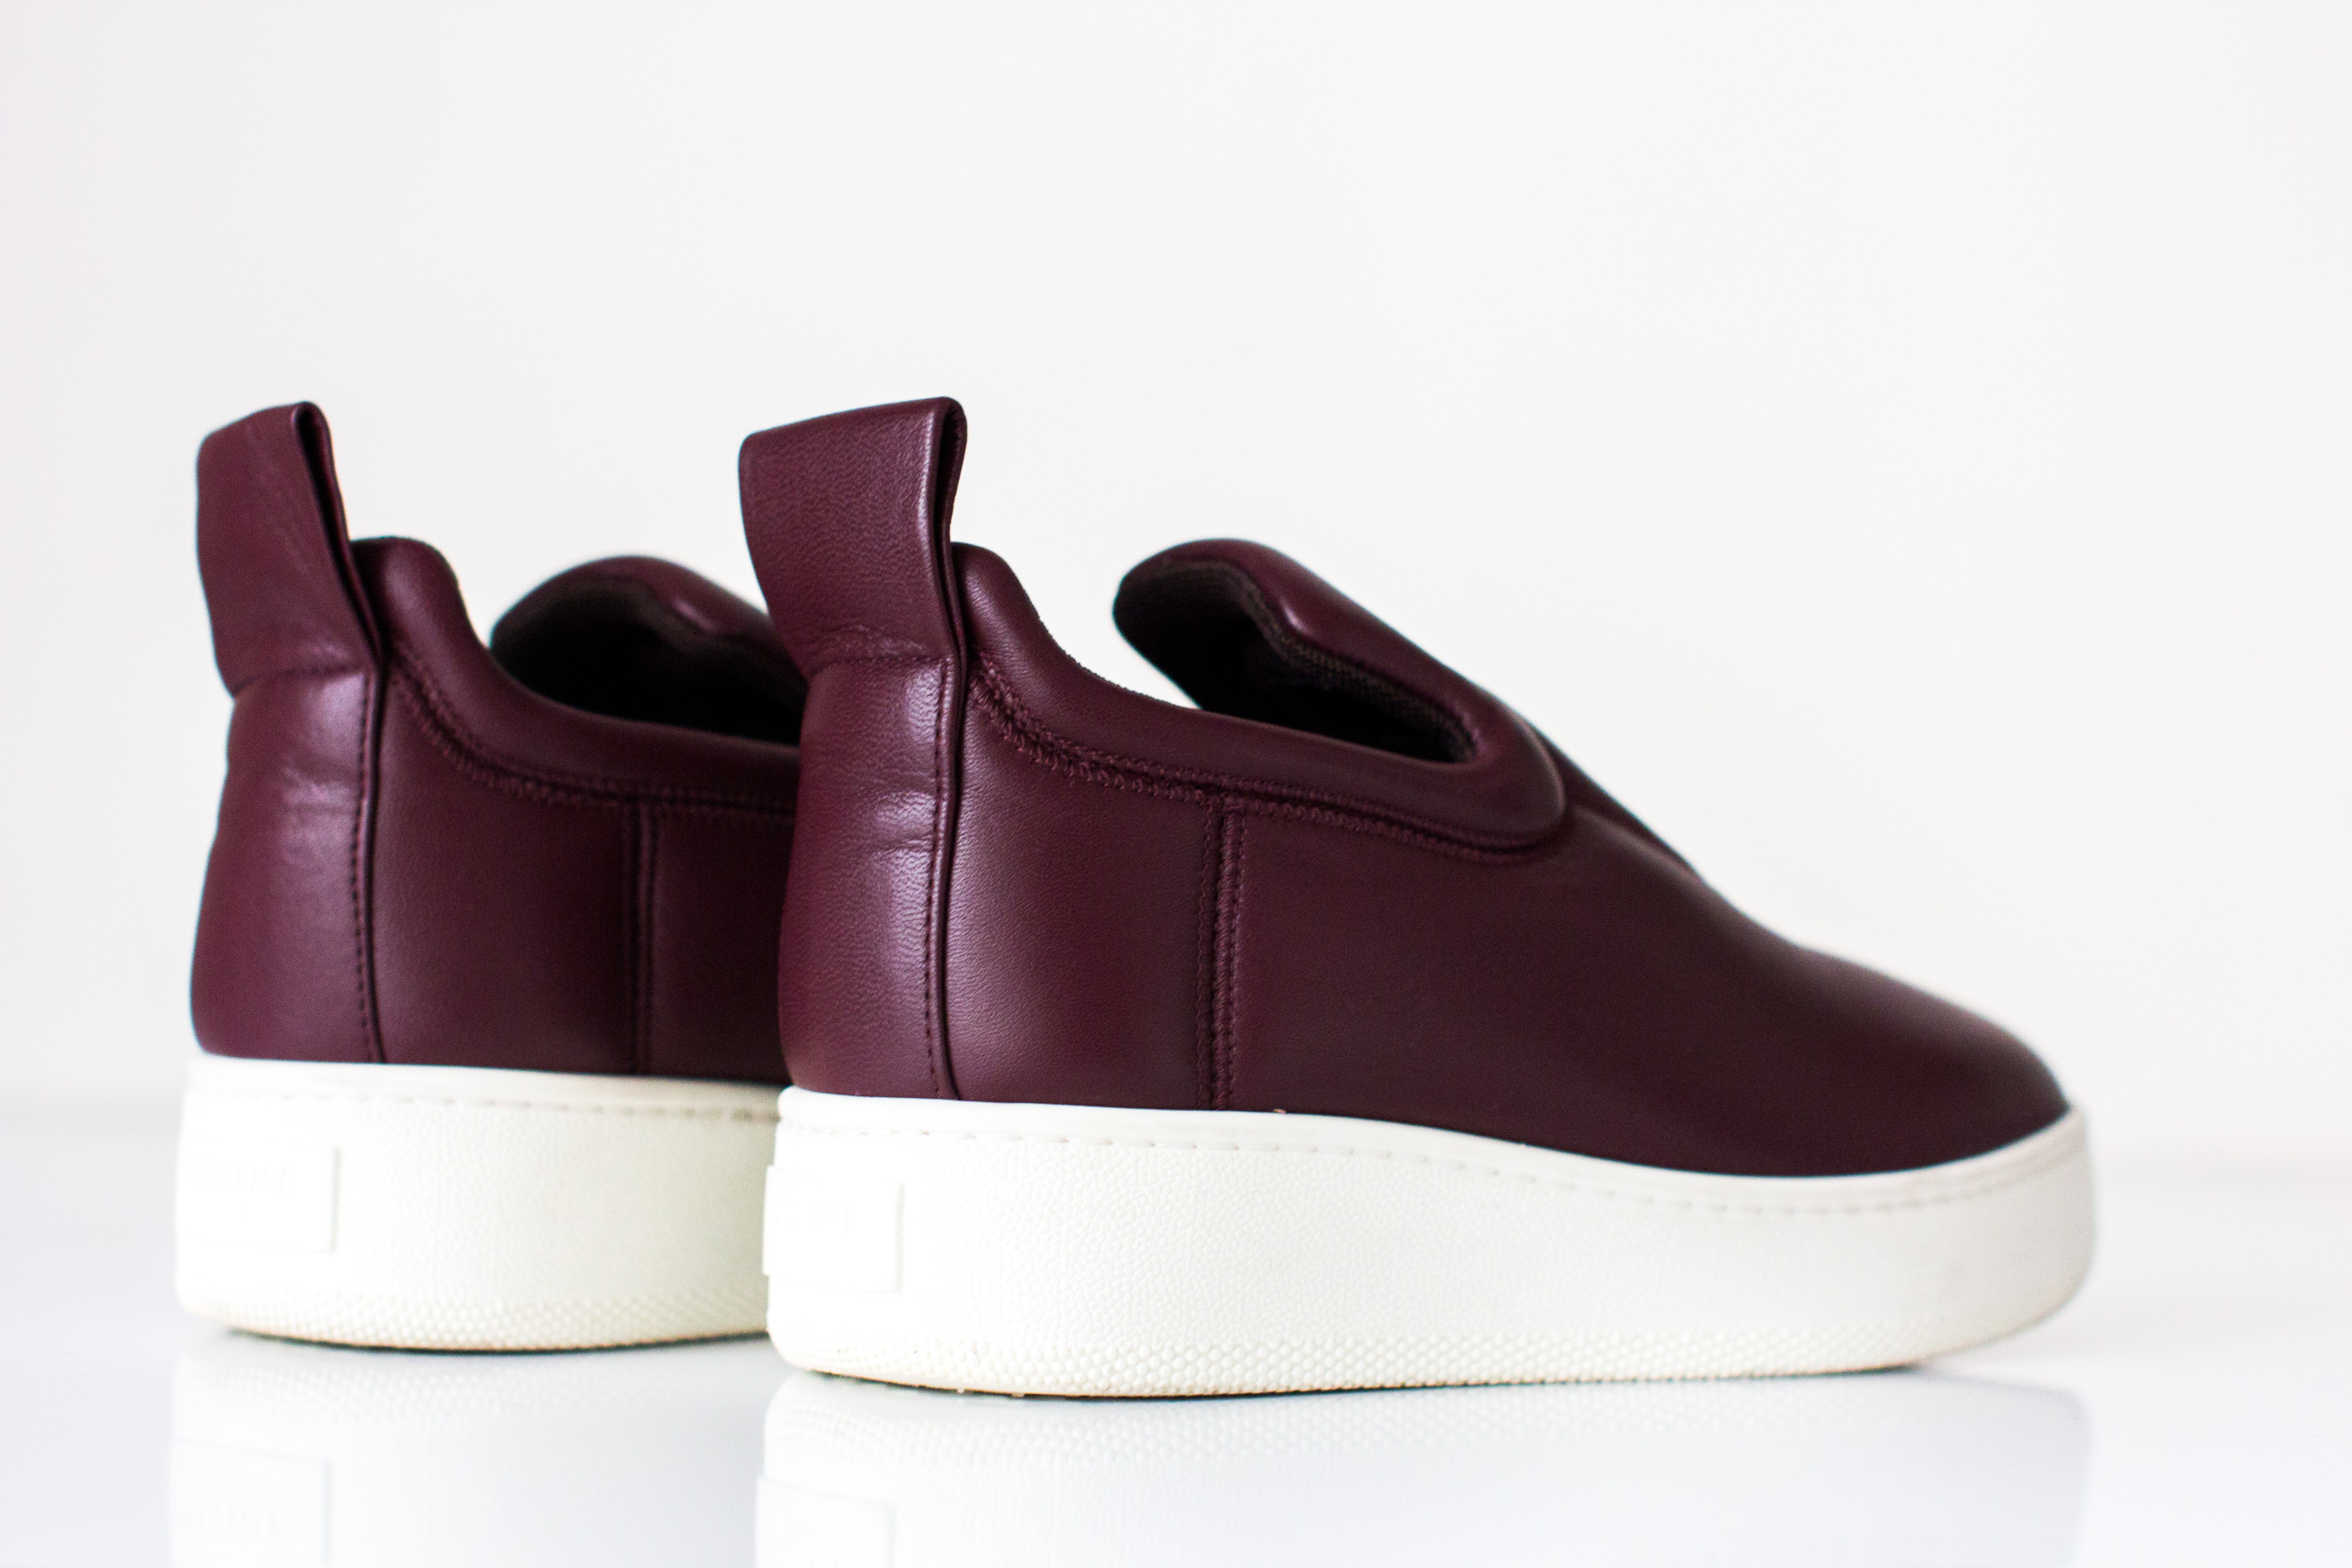 Celine Pull On Sneakers